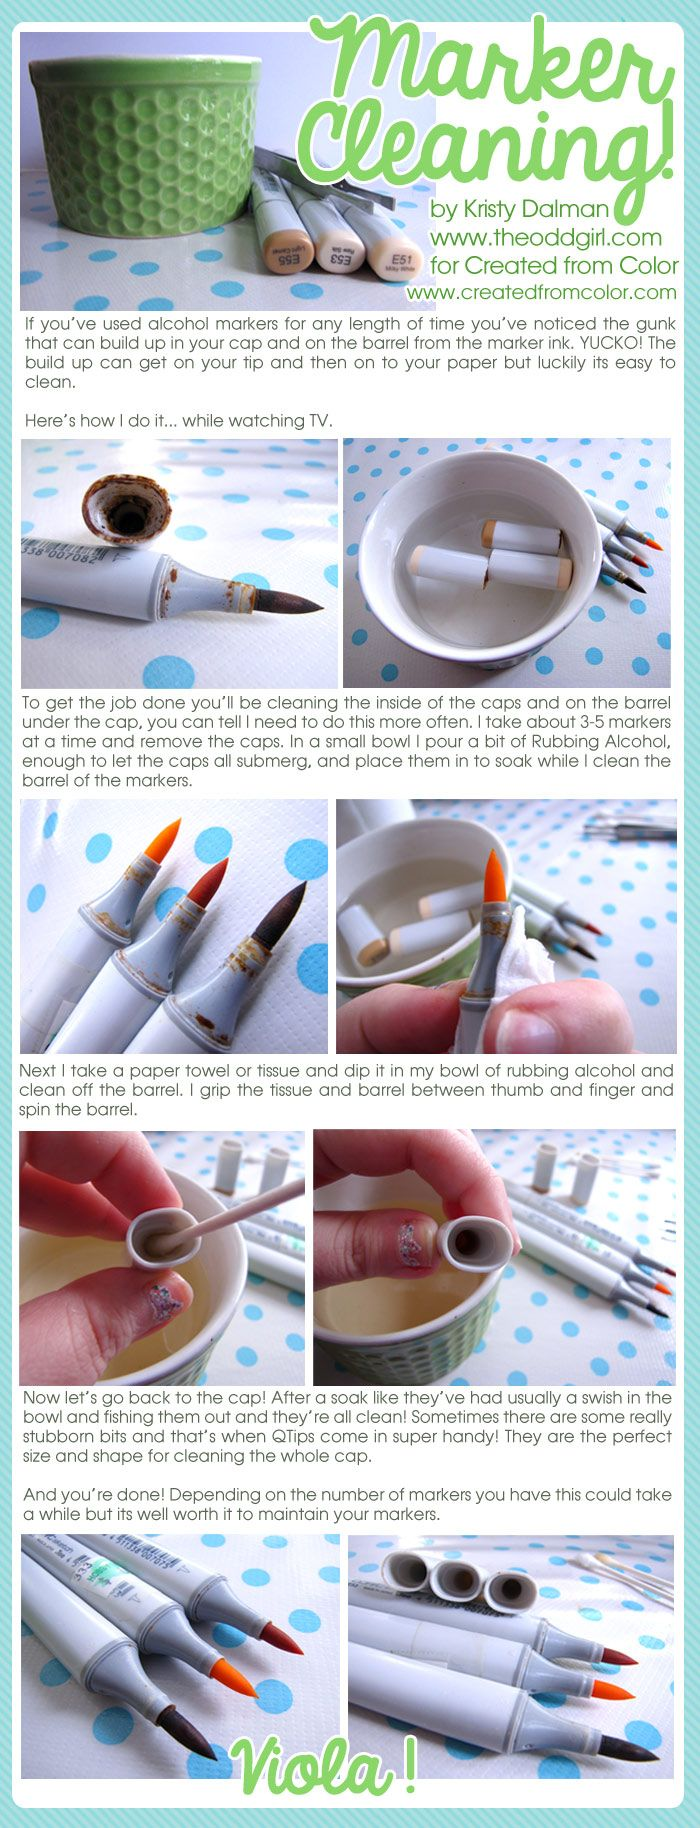 Kristy has a great tutorial on cleaning markers... I very much need to do this!!!